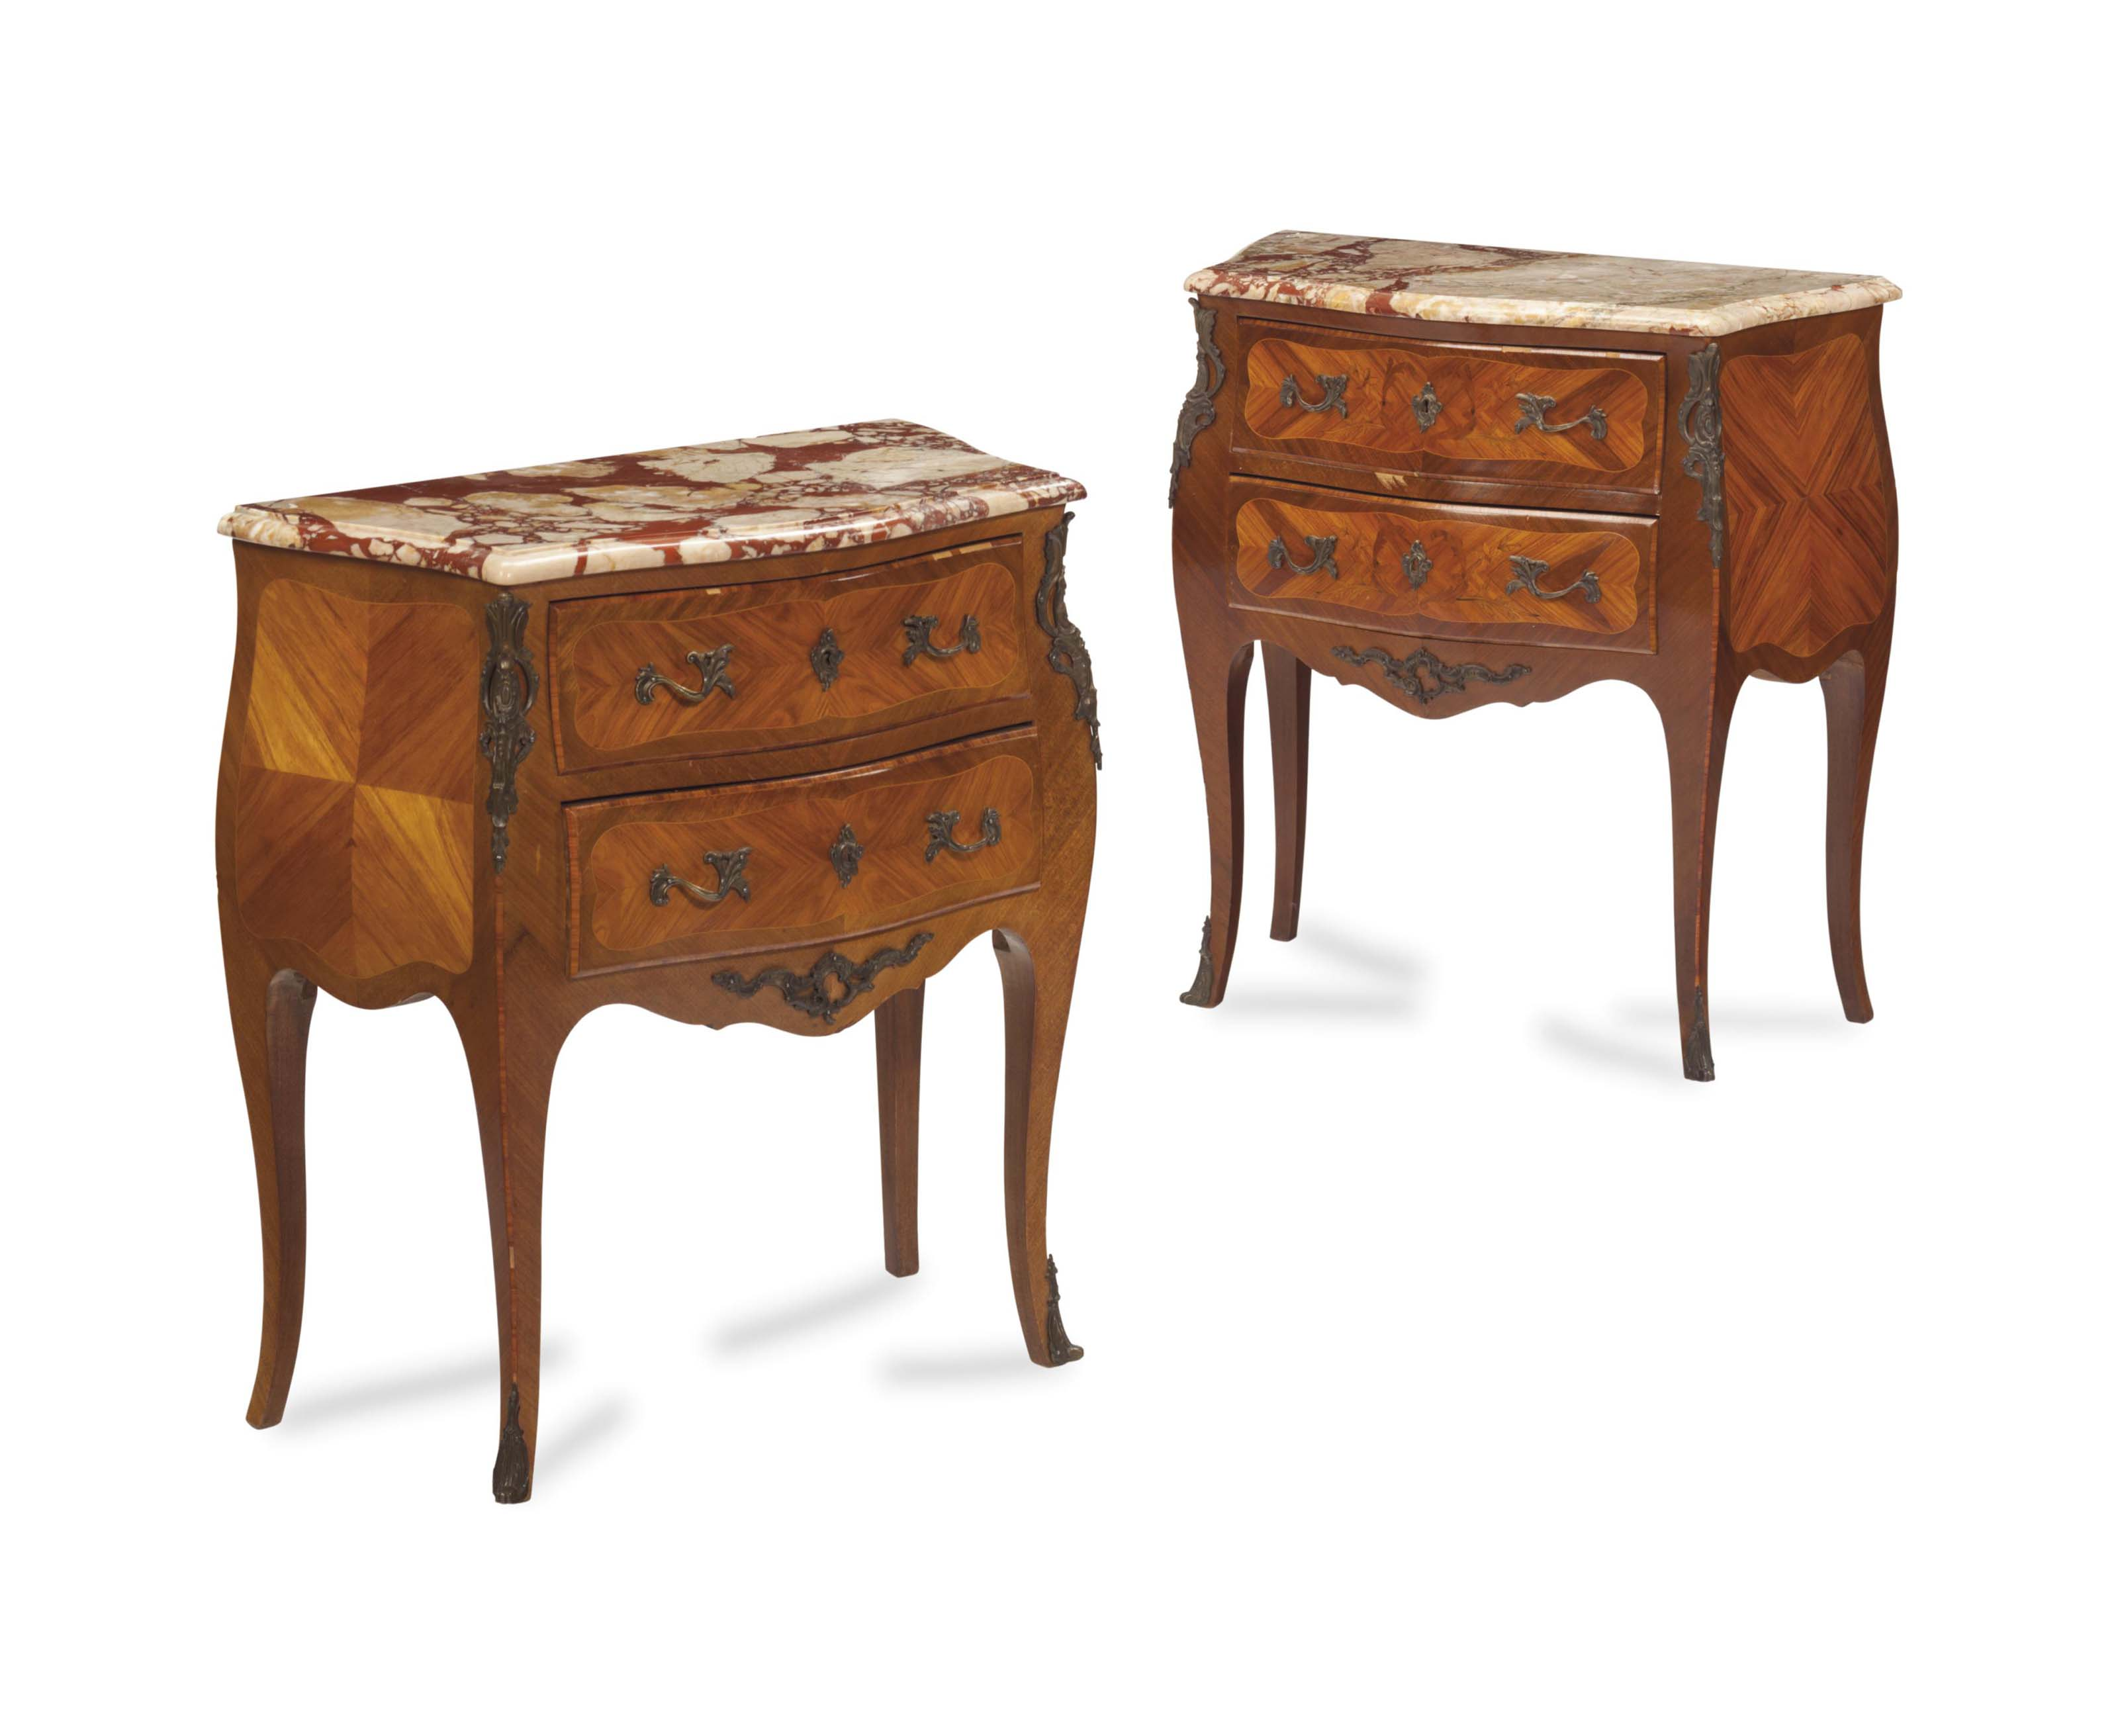 A PAIR OF LOUIS XV STYLE GILT METAL-MOUNTED TULIPWOOD MARQUETRY MARBLE-TOP PETIT COMMODES,